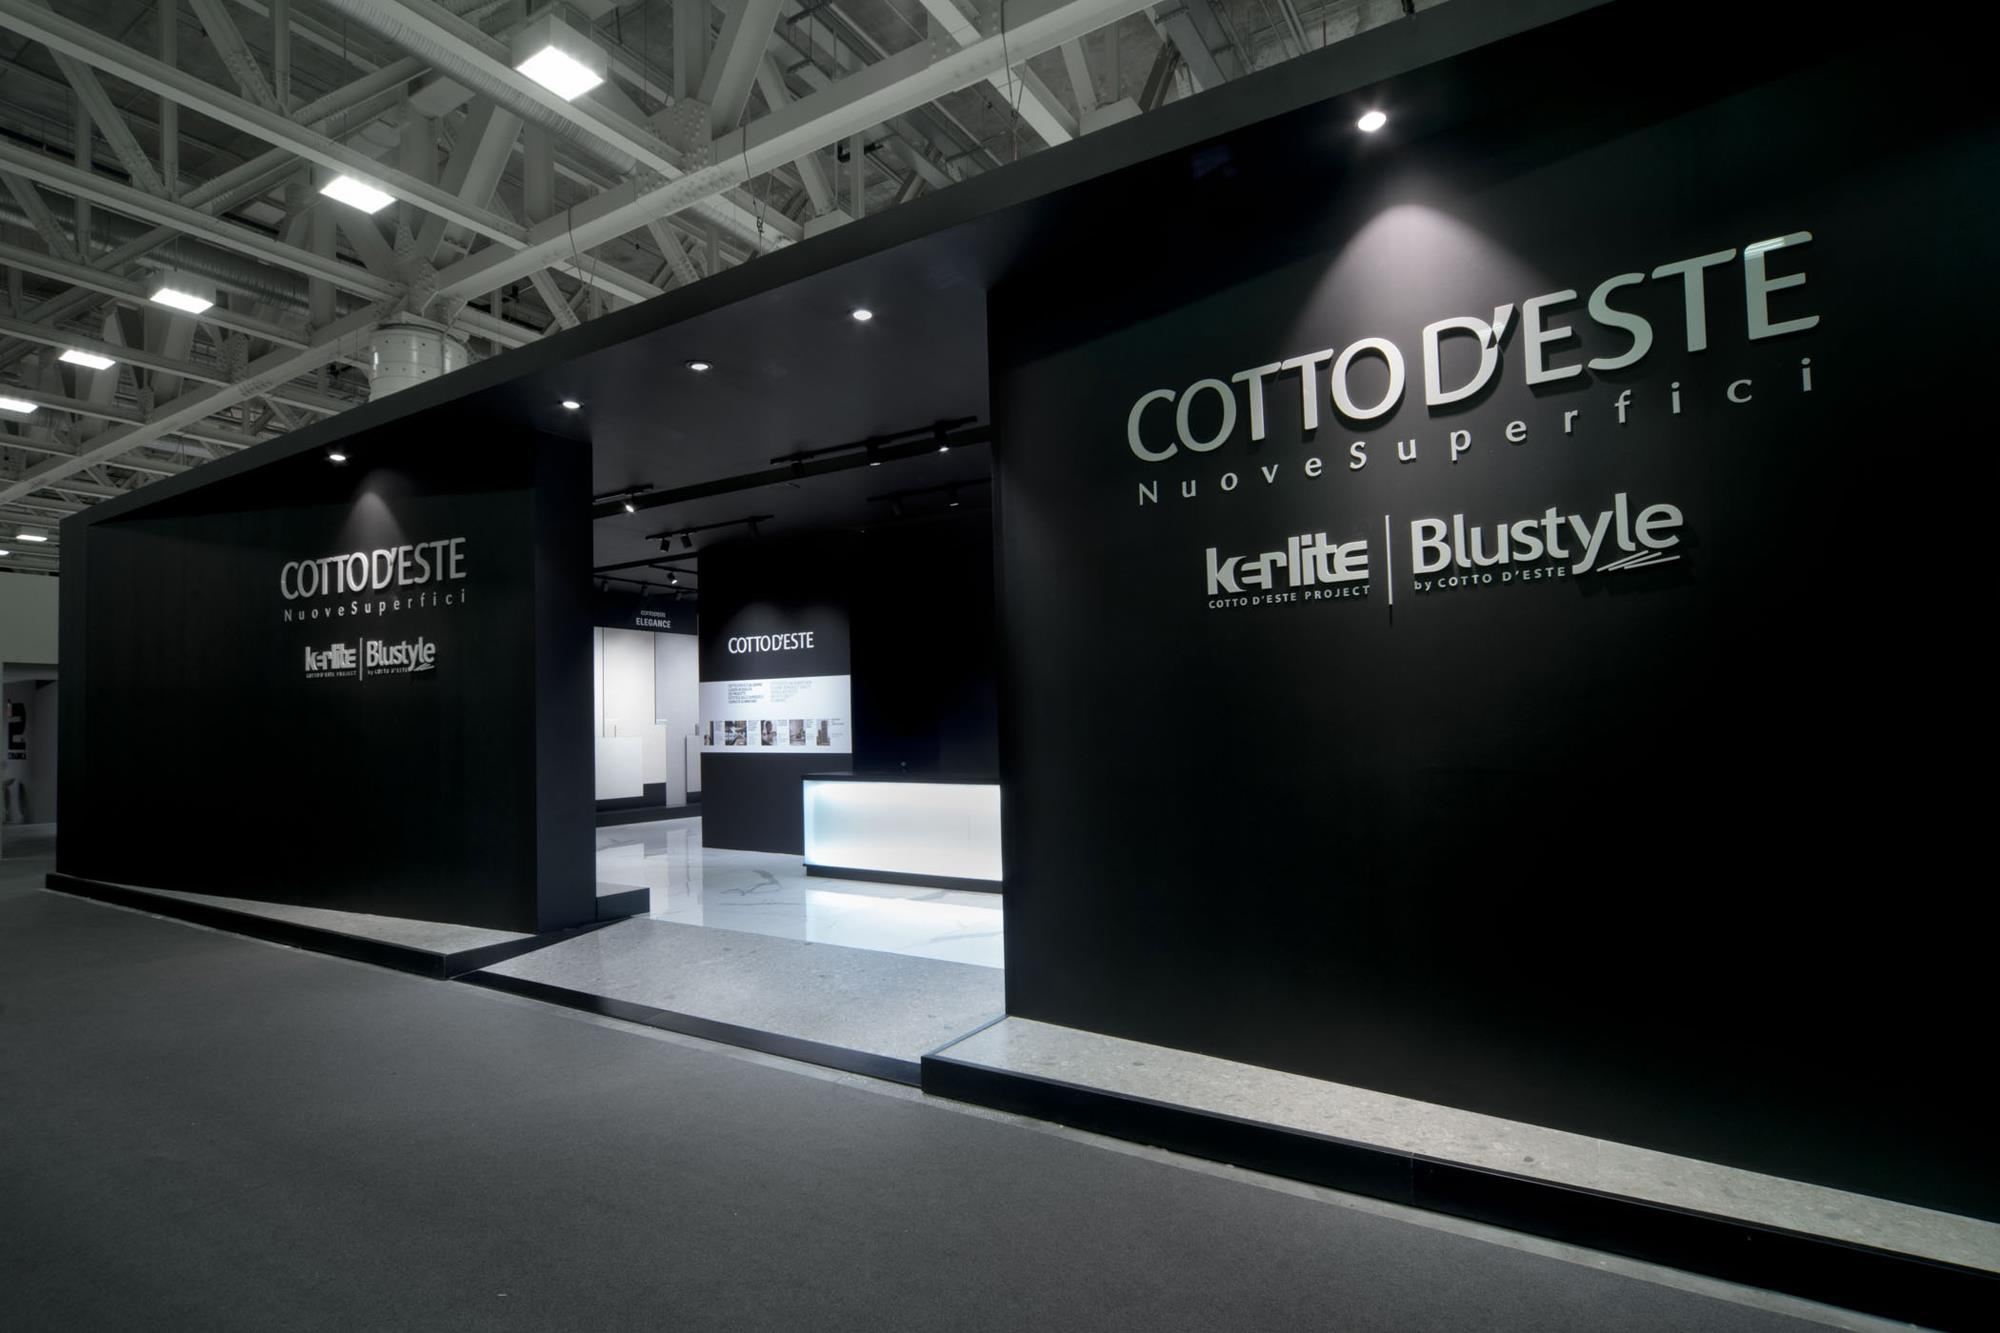 Cersaie 2018, Cotto d'Este takes ceramics to a new level: Photo 1